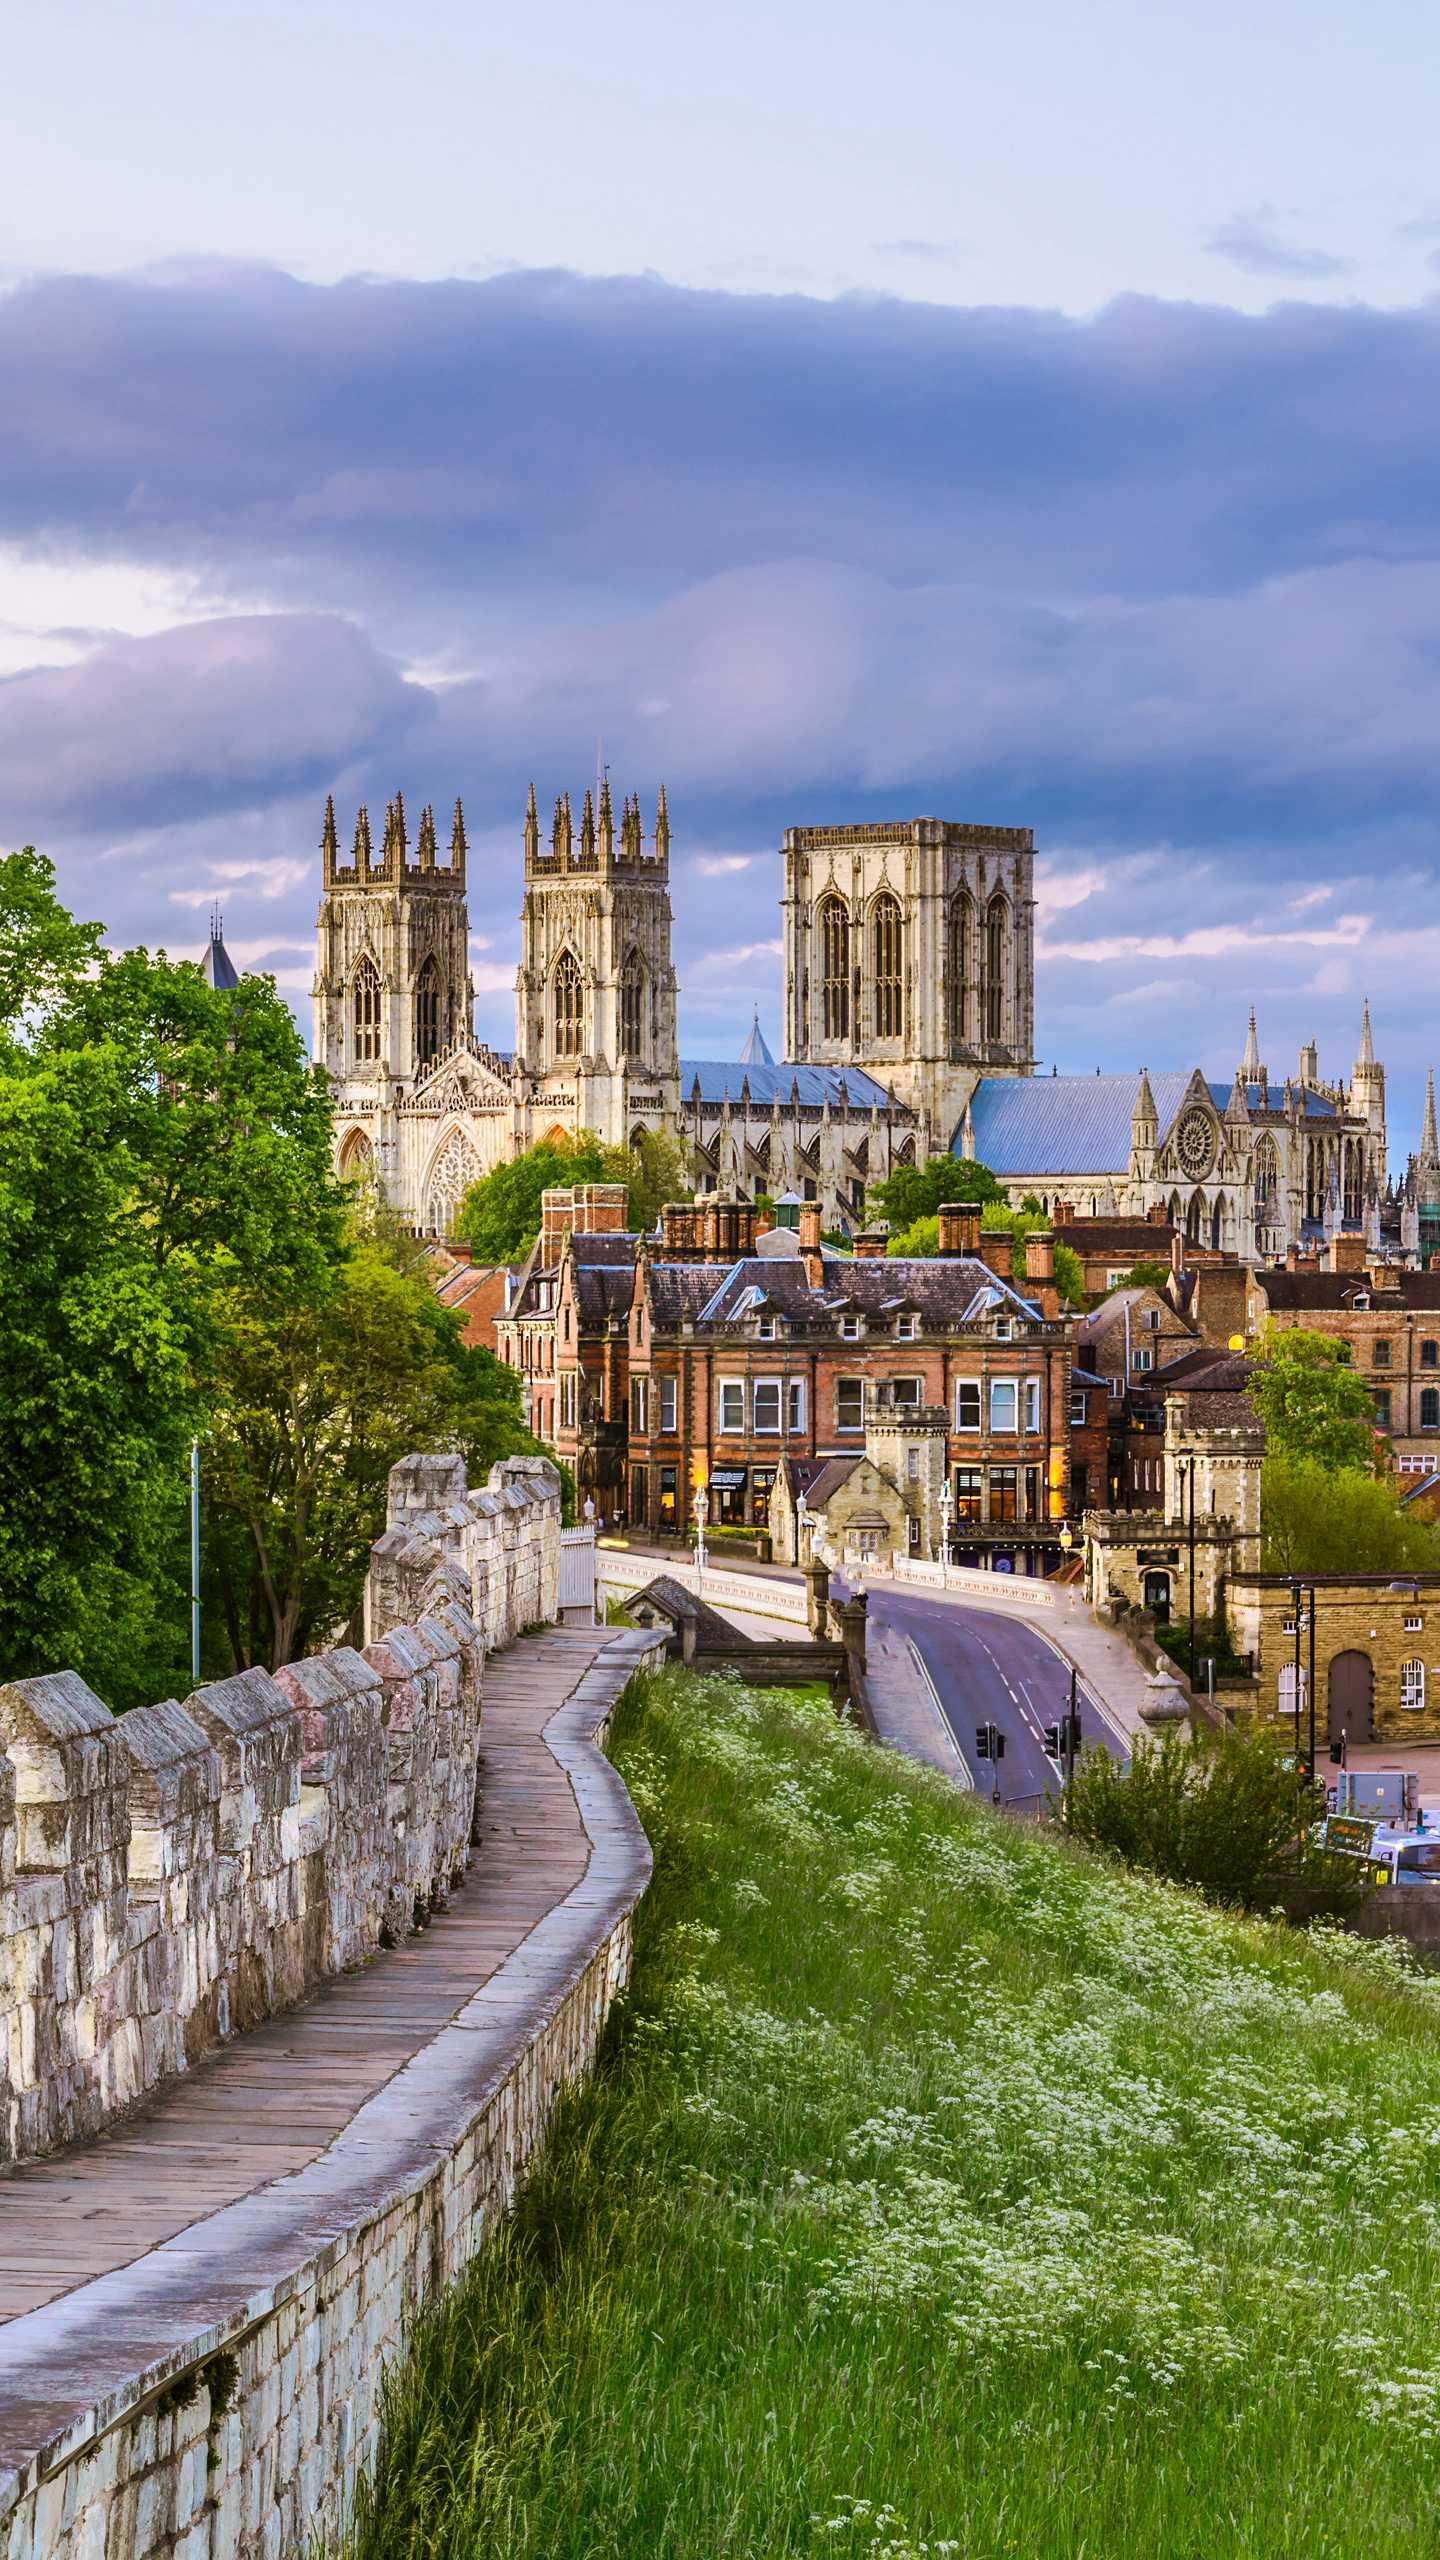 Britain - York. One of the most famous historical and cultural cities in the UK, with many places of interest.